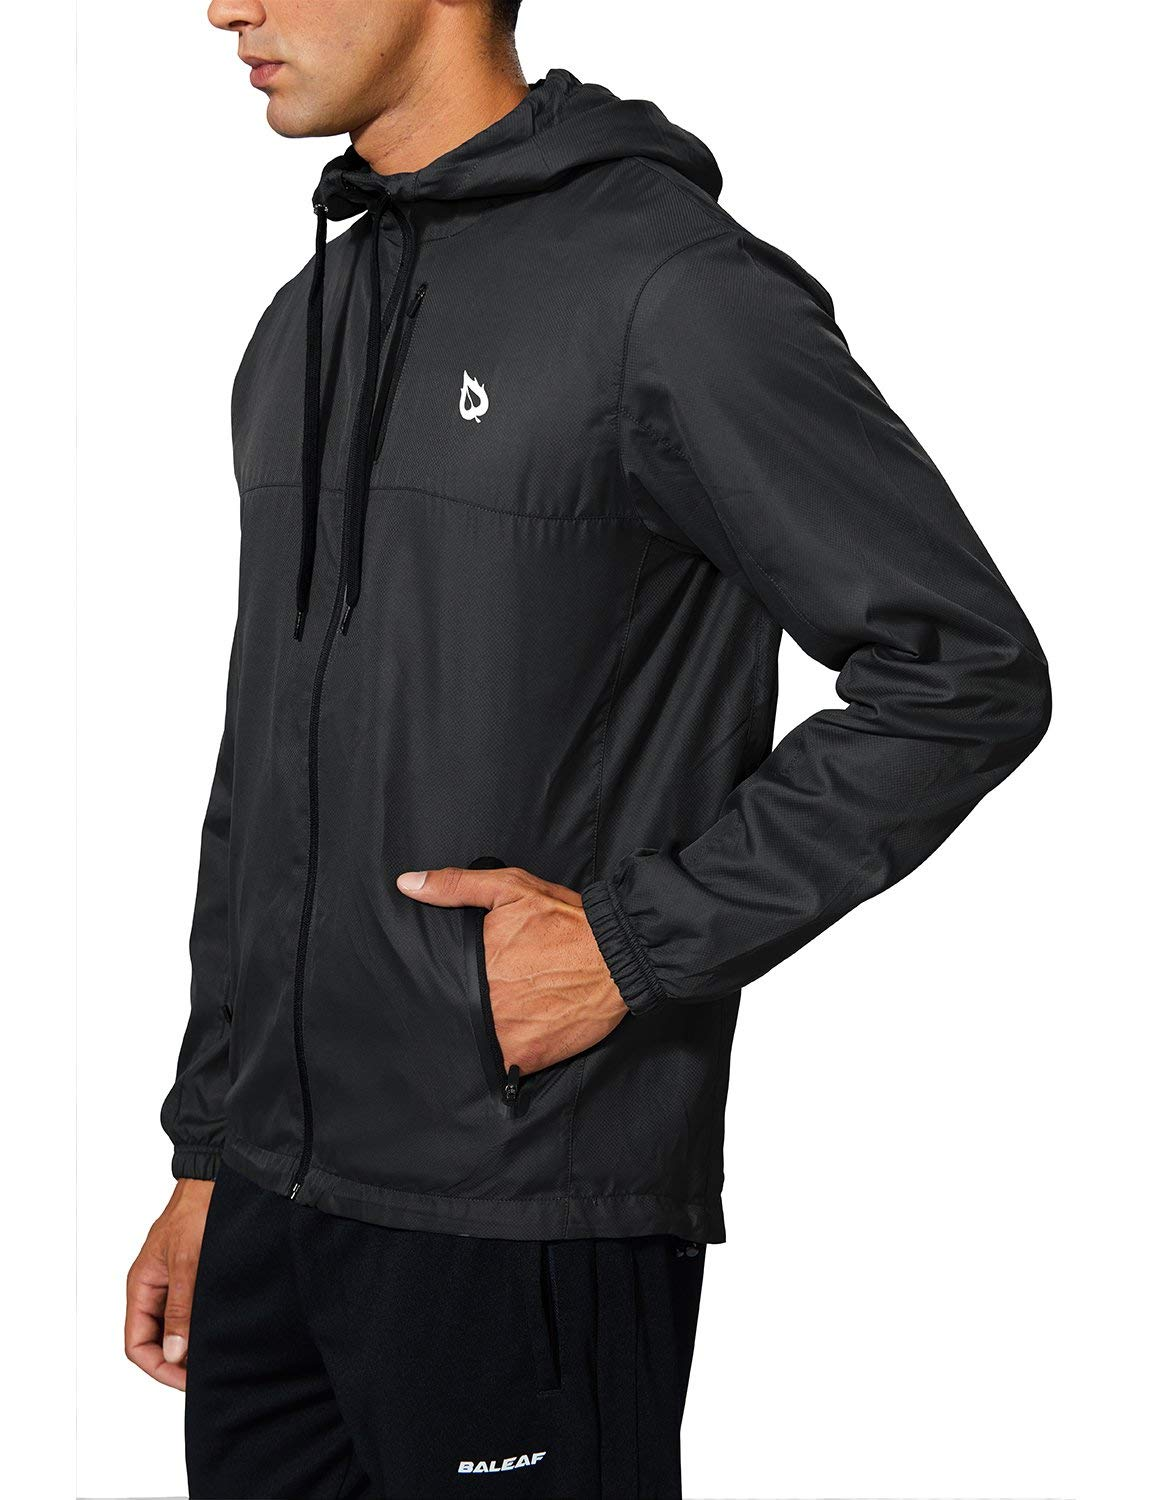 060152a6a5ed Amazon.com  Baleaf Men s Running Windbreaker Lightweight Hooded Windproof  Jacket  Sports   Outdoors